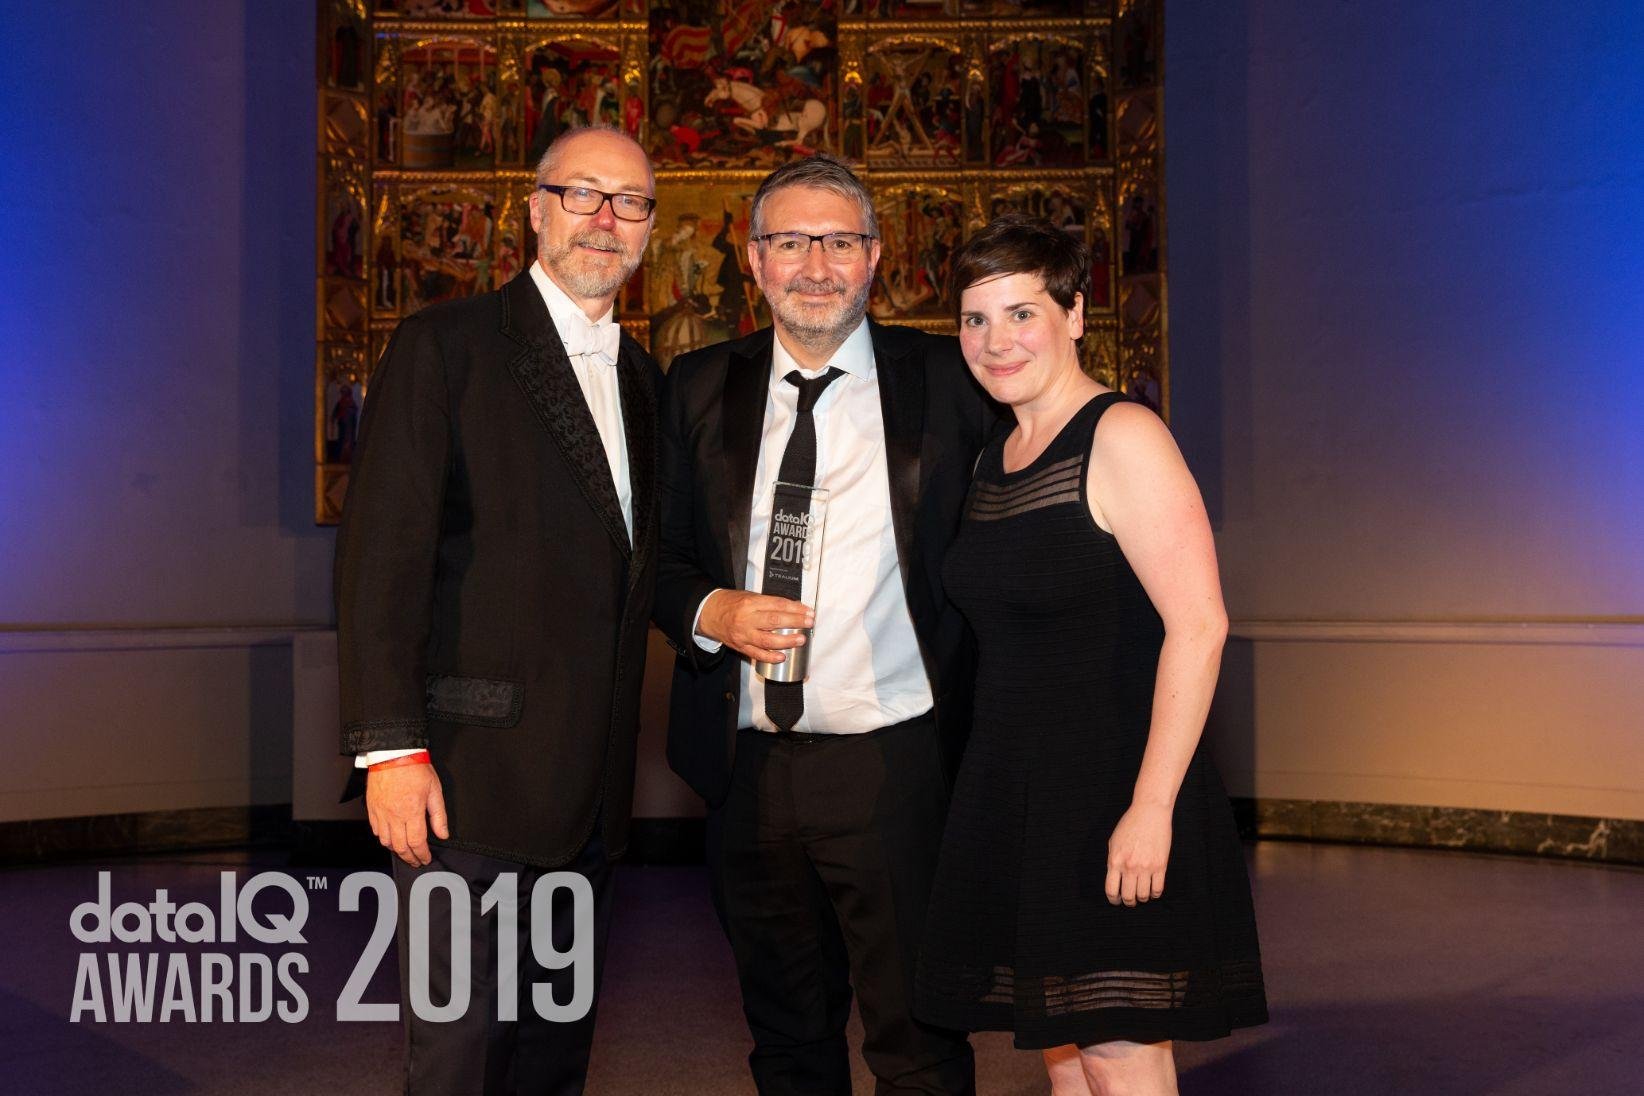 Awards 2019 Image 56